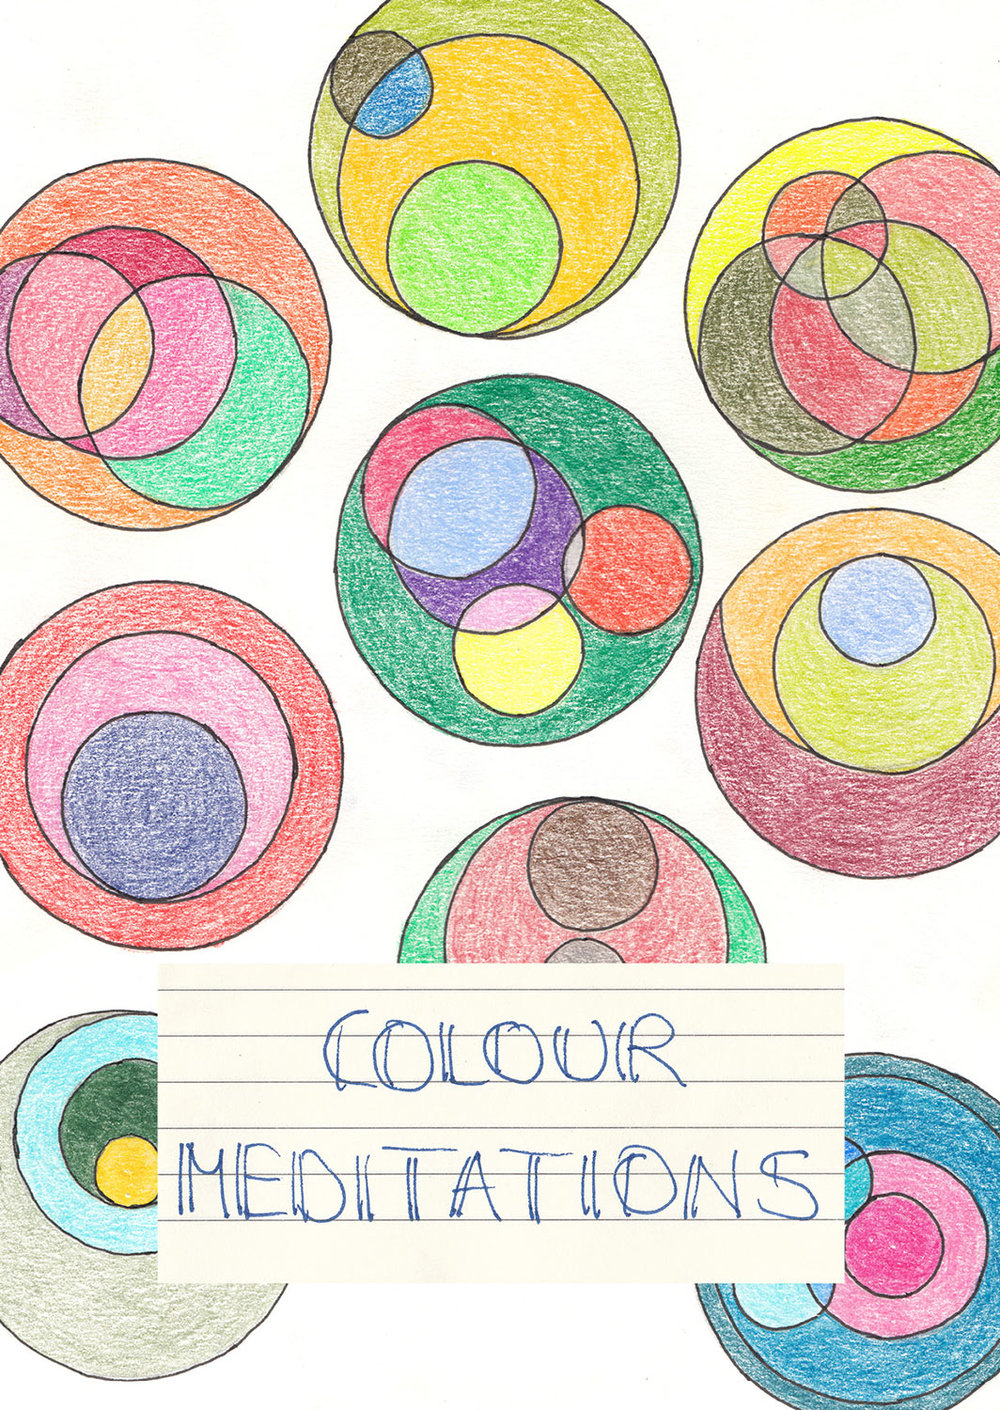 Mood boost - Colour affect one's feelings, moods, and emotions. This zine can be used as colour pallet inspiration, or just as a space to rest the eyes.